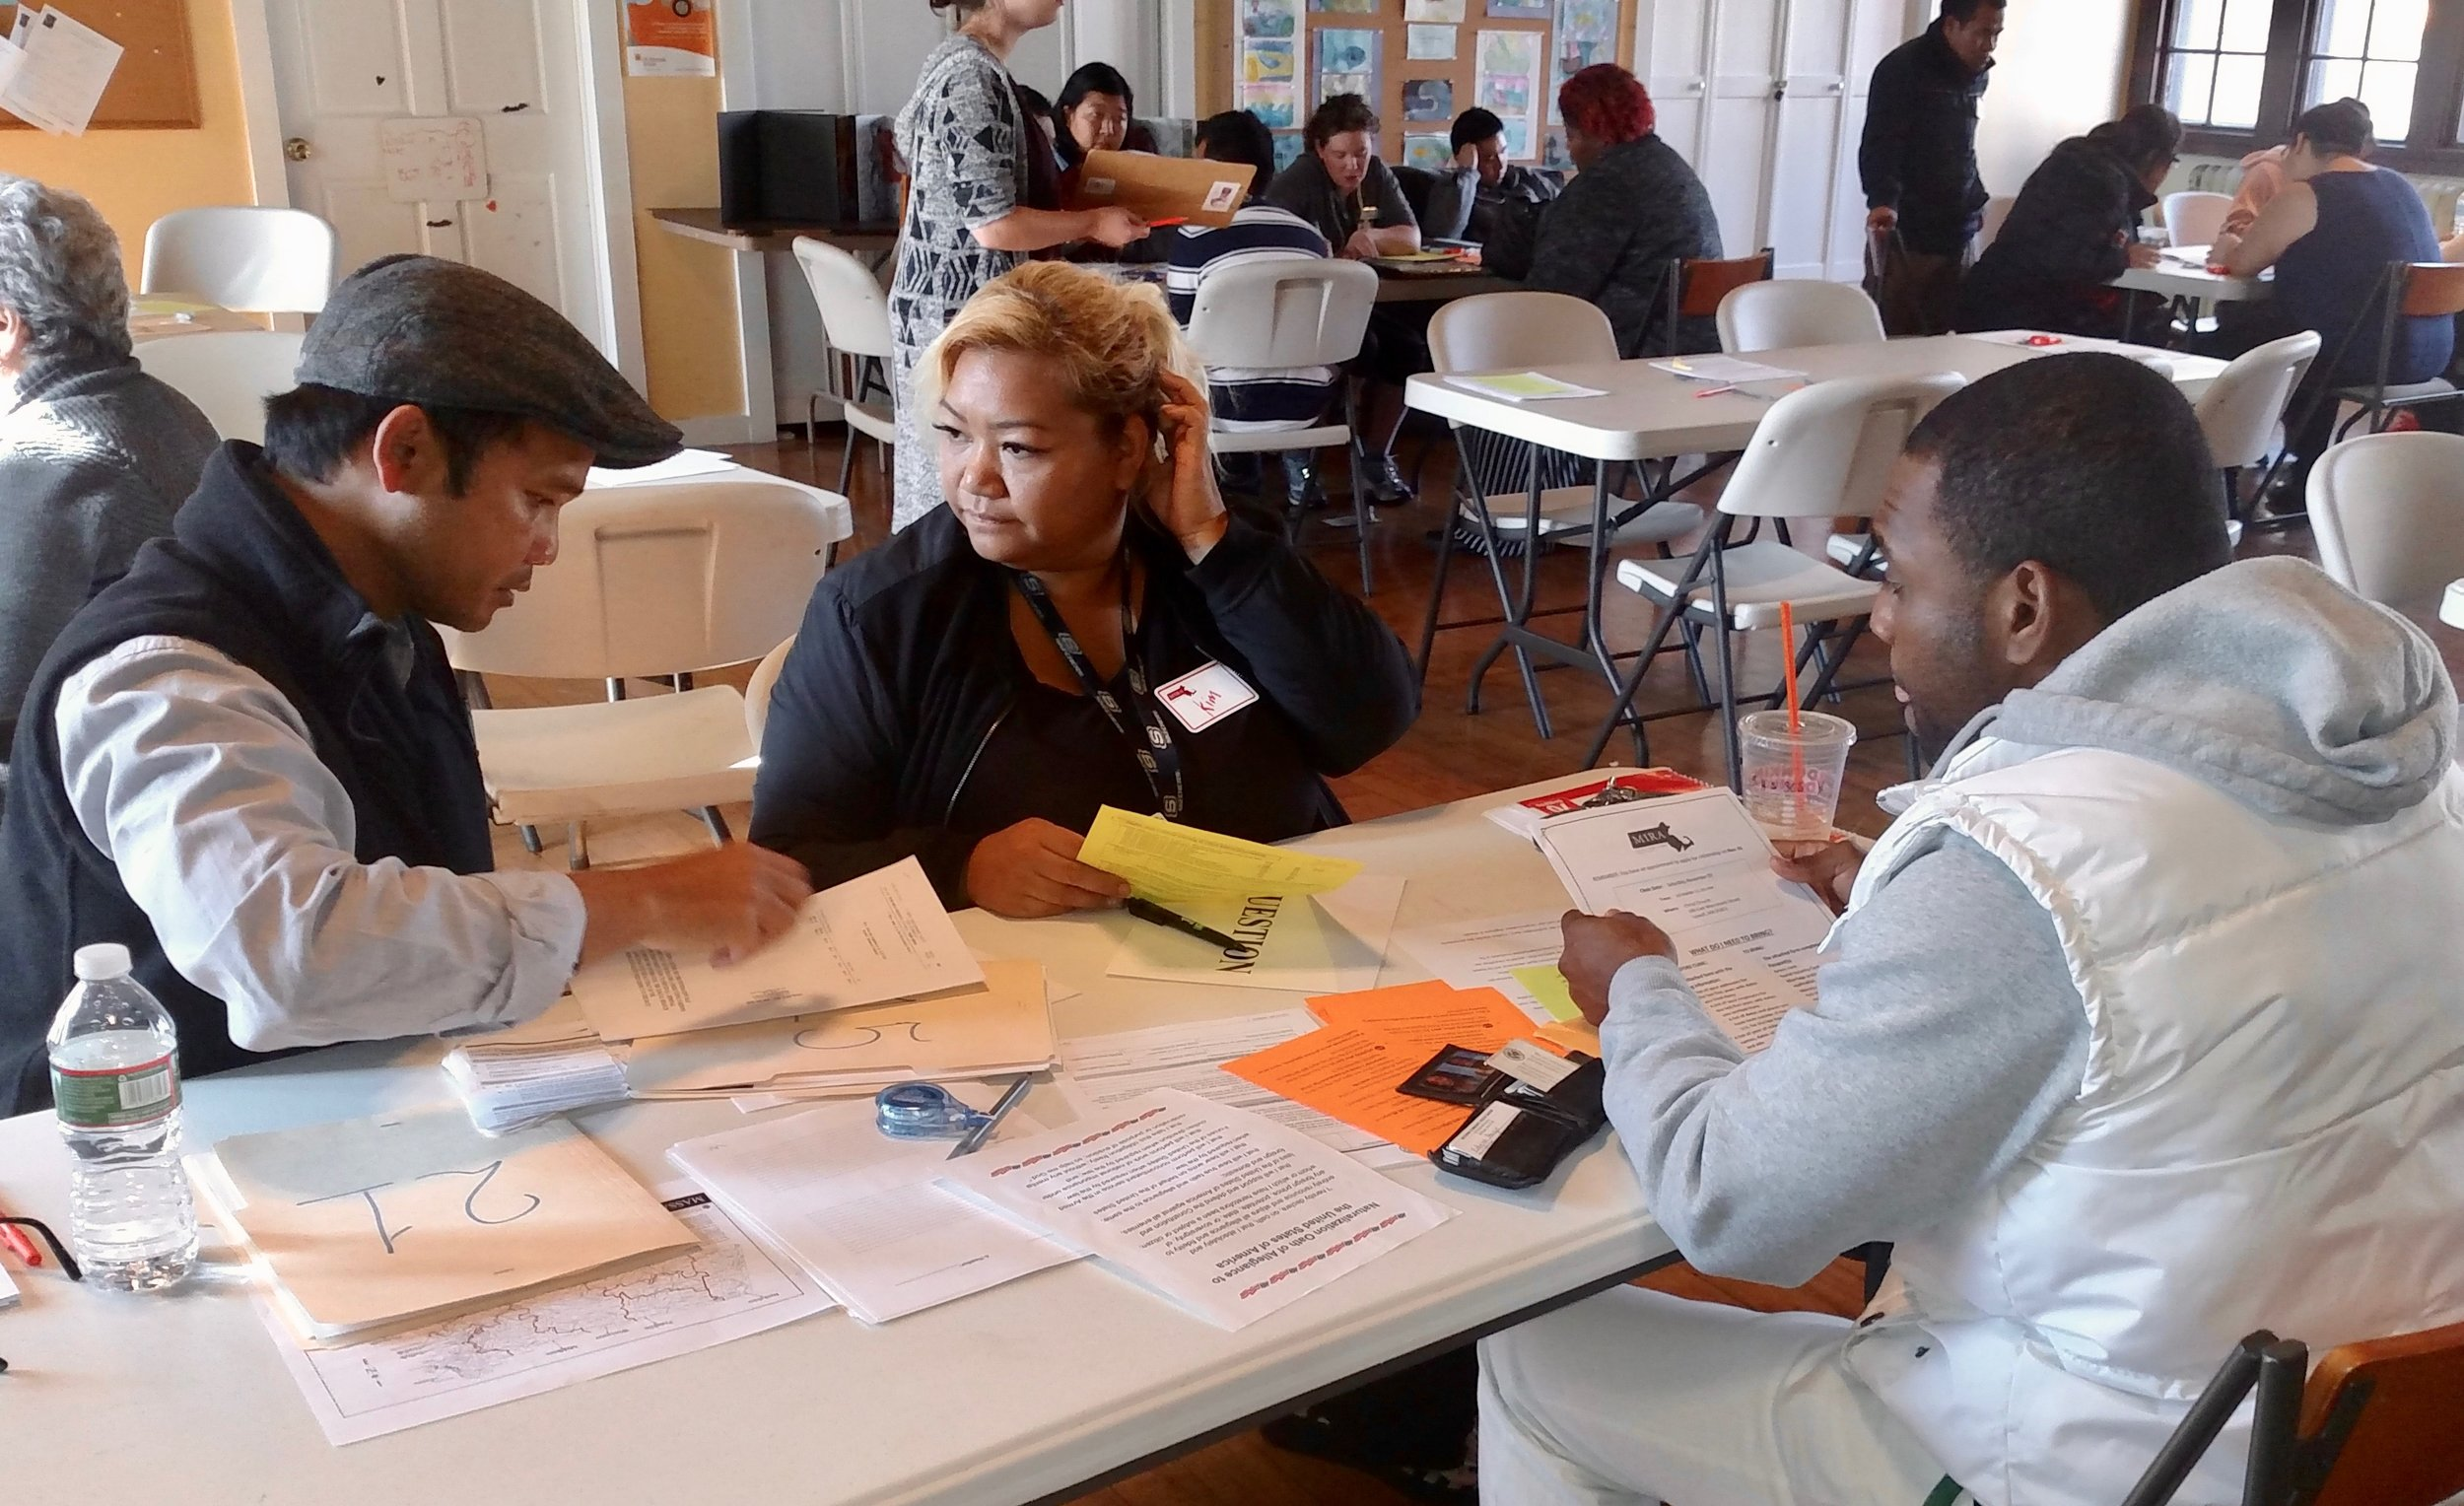 2016 Citizenship Clinic, with support from the Massachusetts Immigrant and Refugee Advocacy Coalition (MIRA)